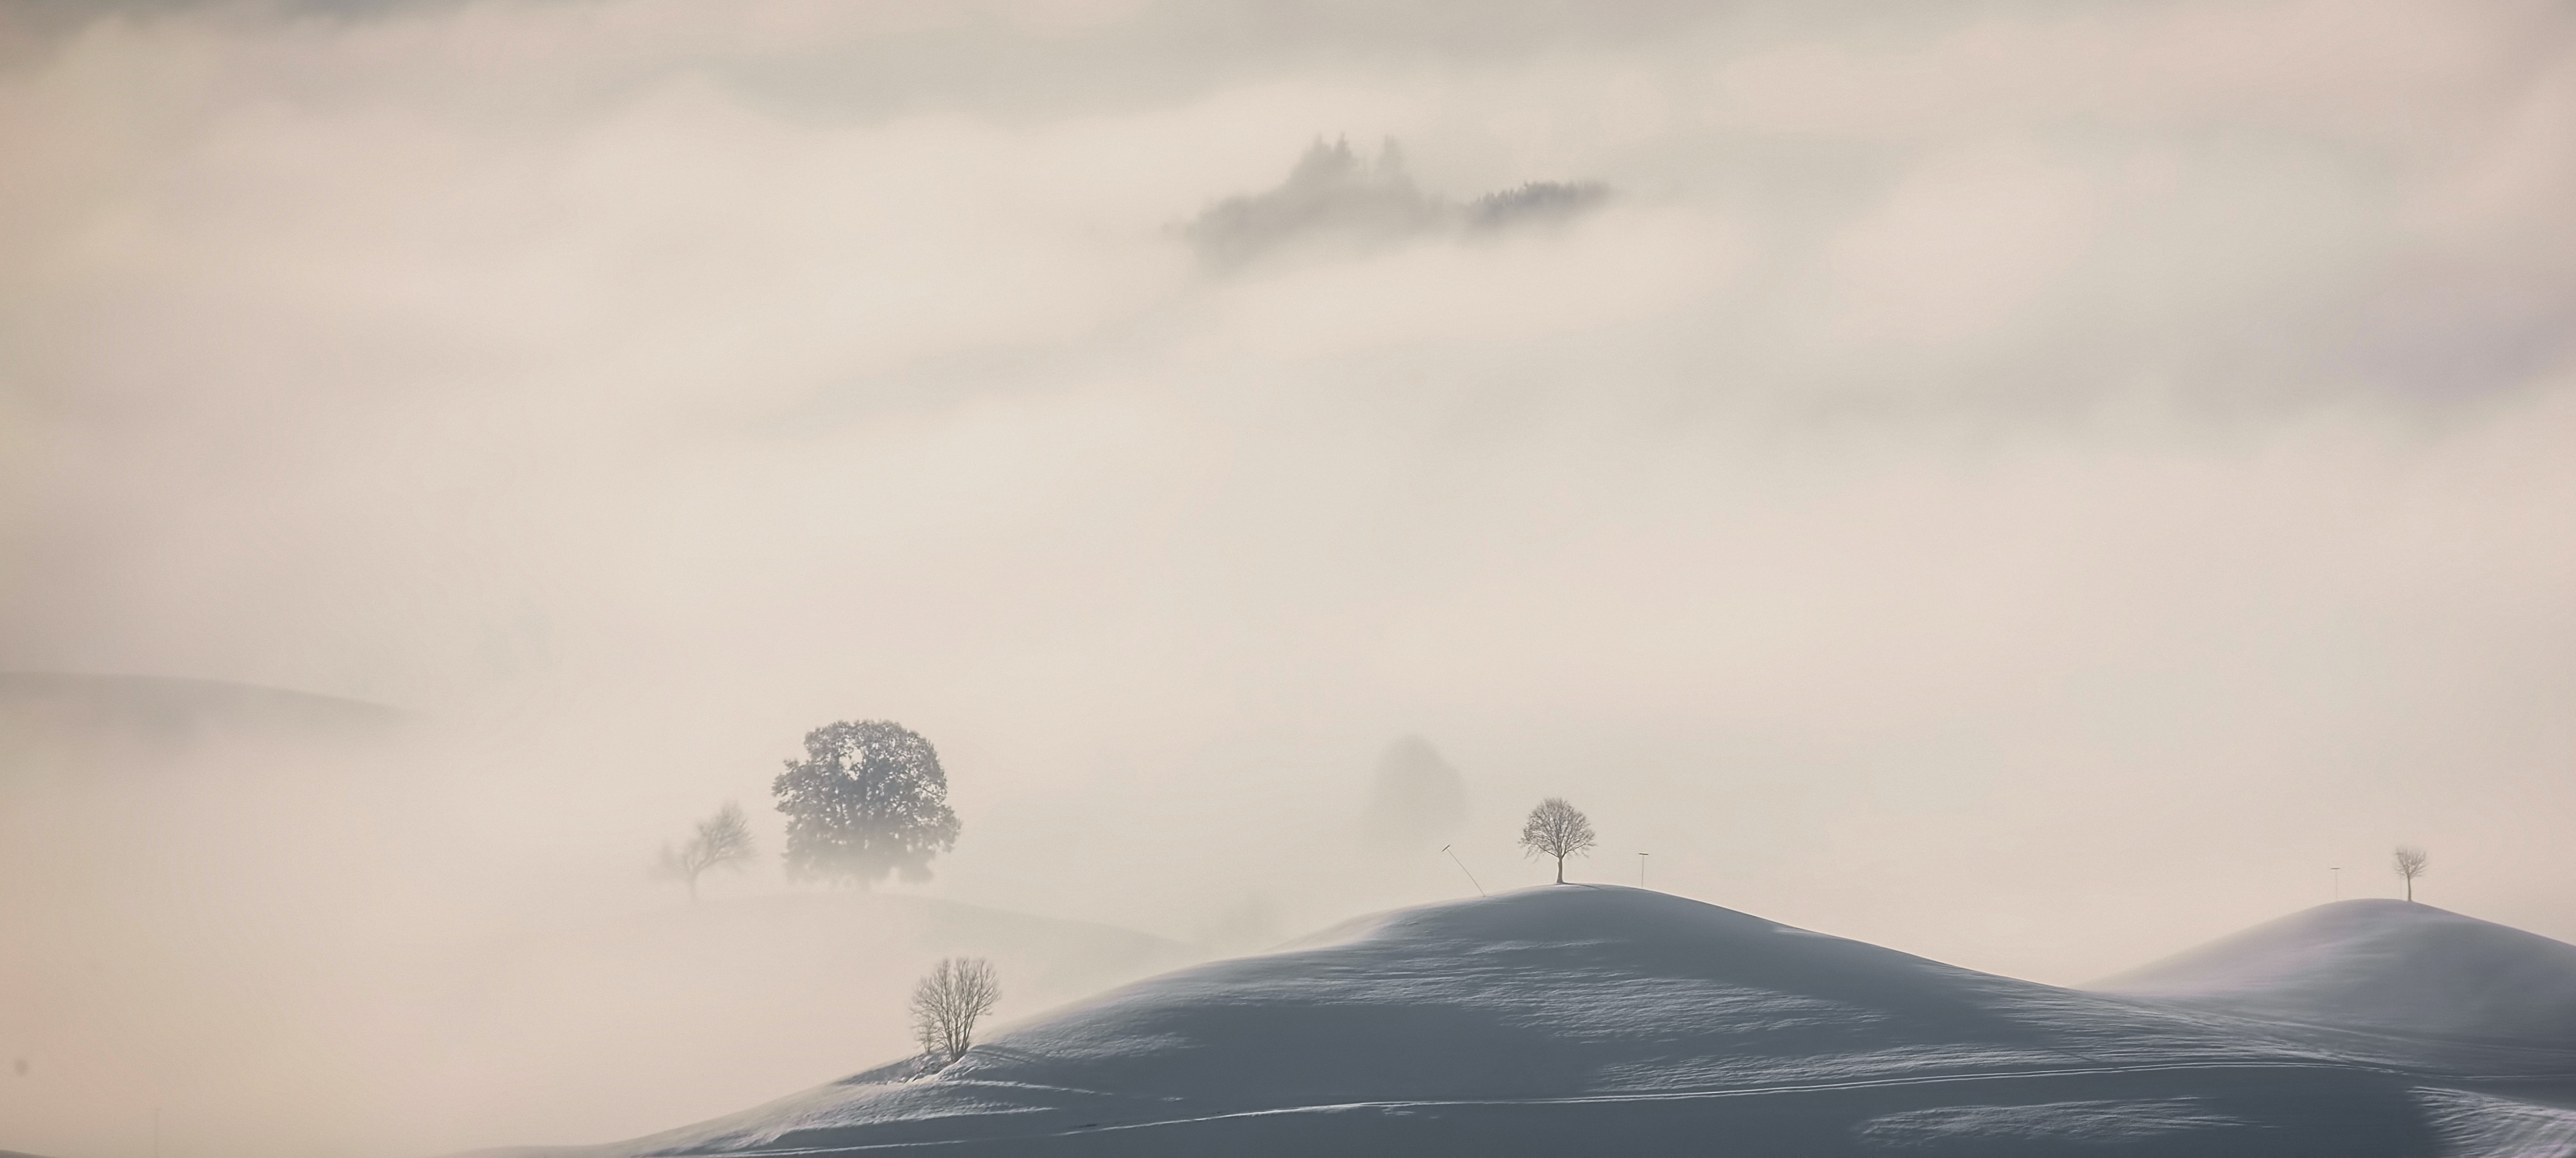 tree on top of mountain coated with fog